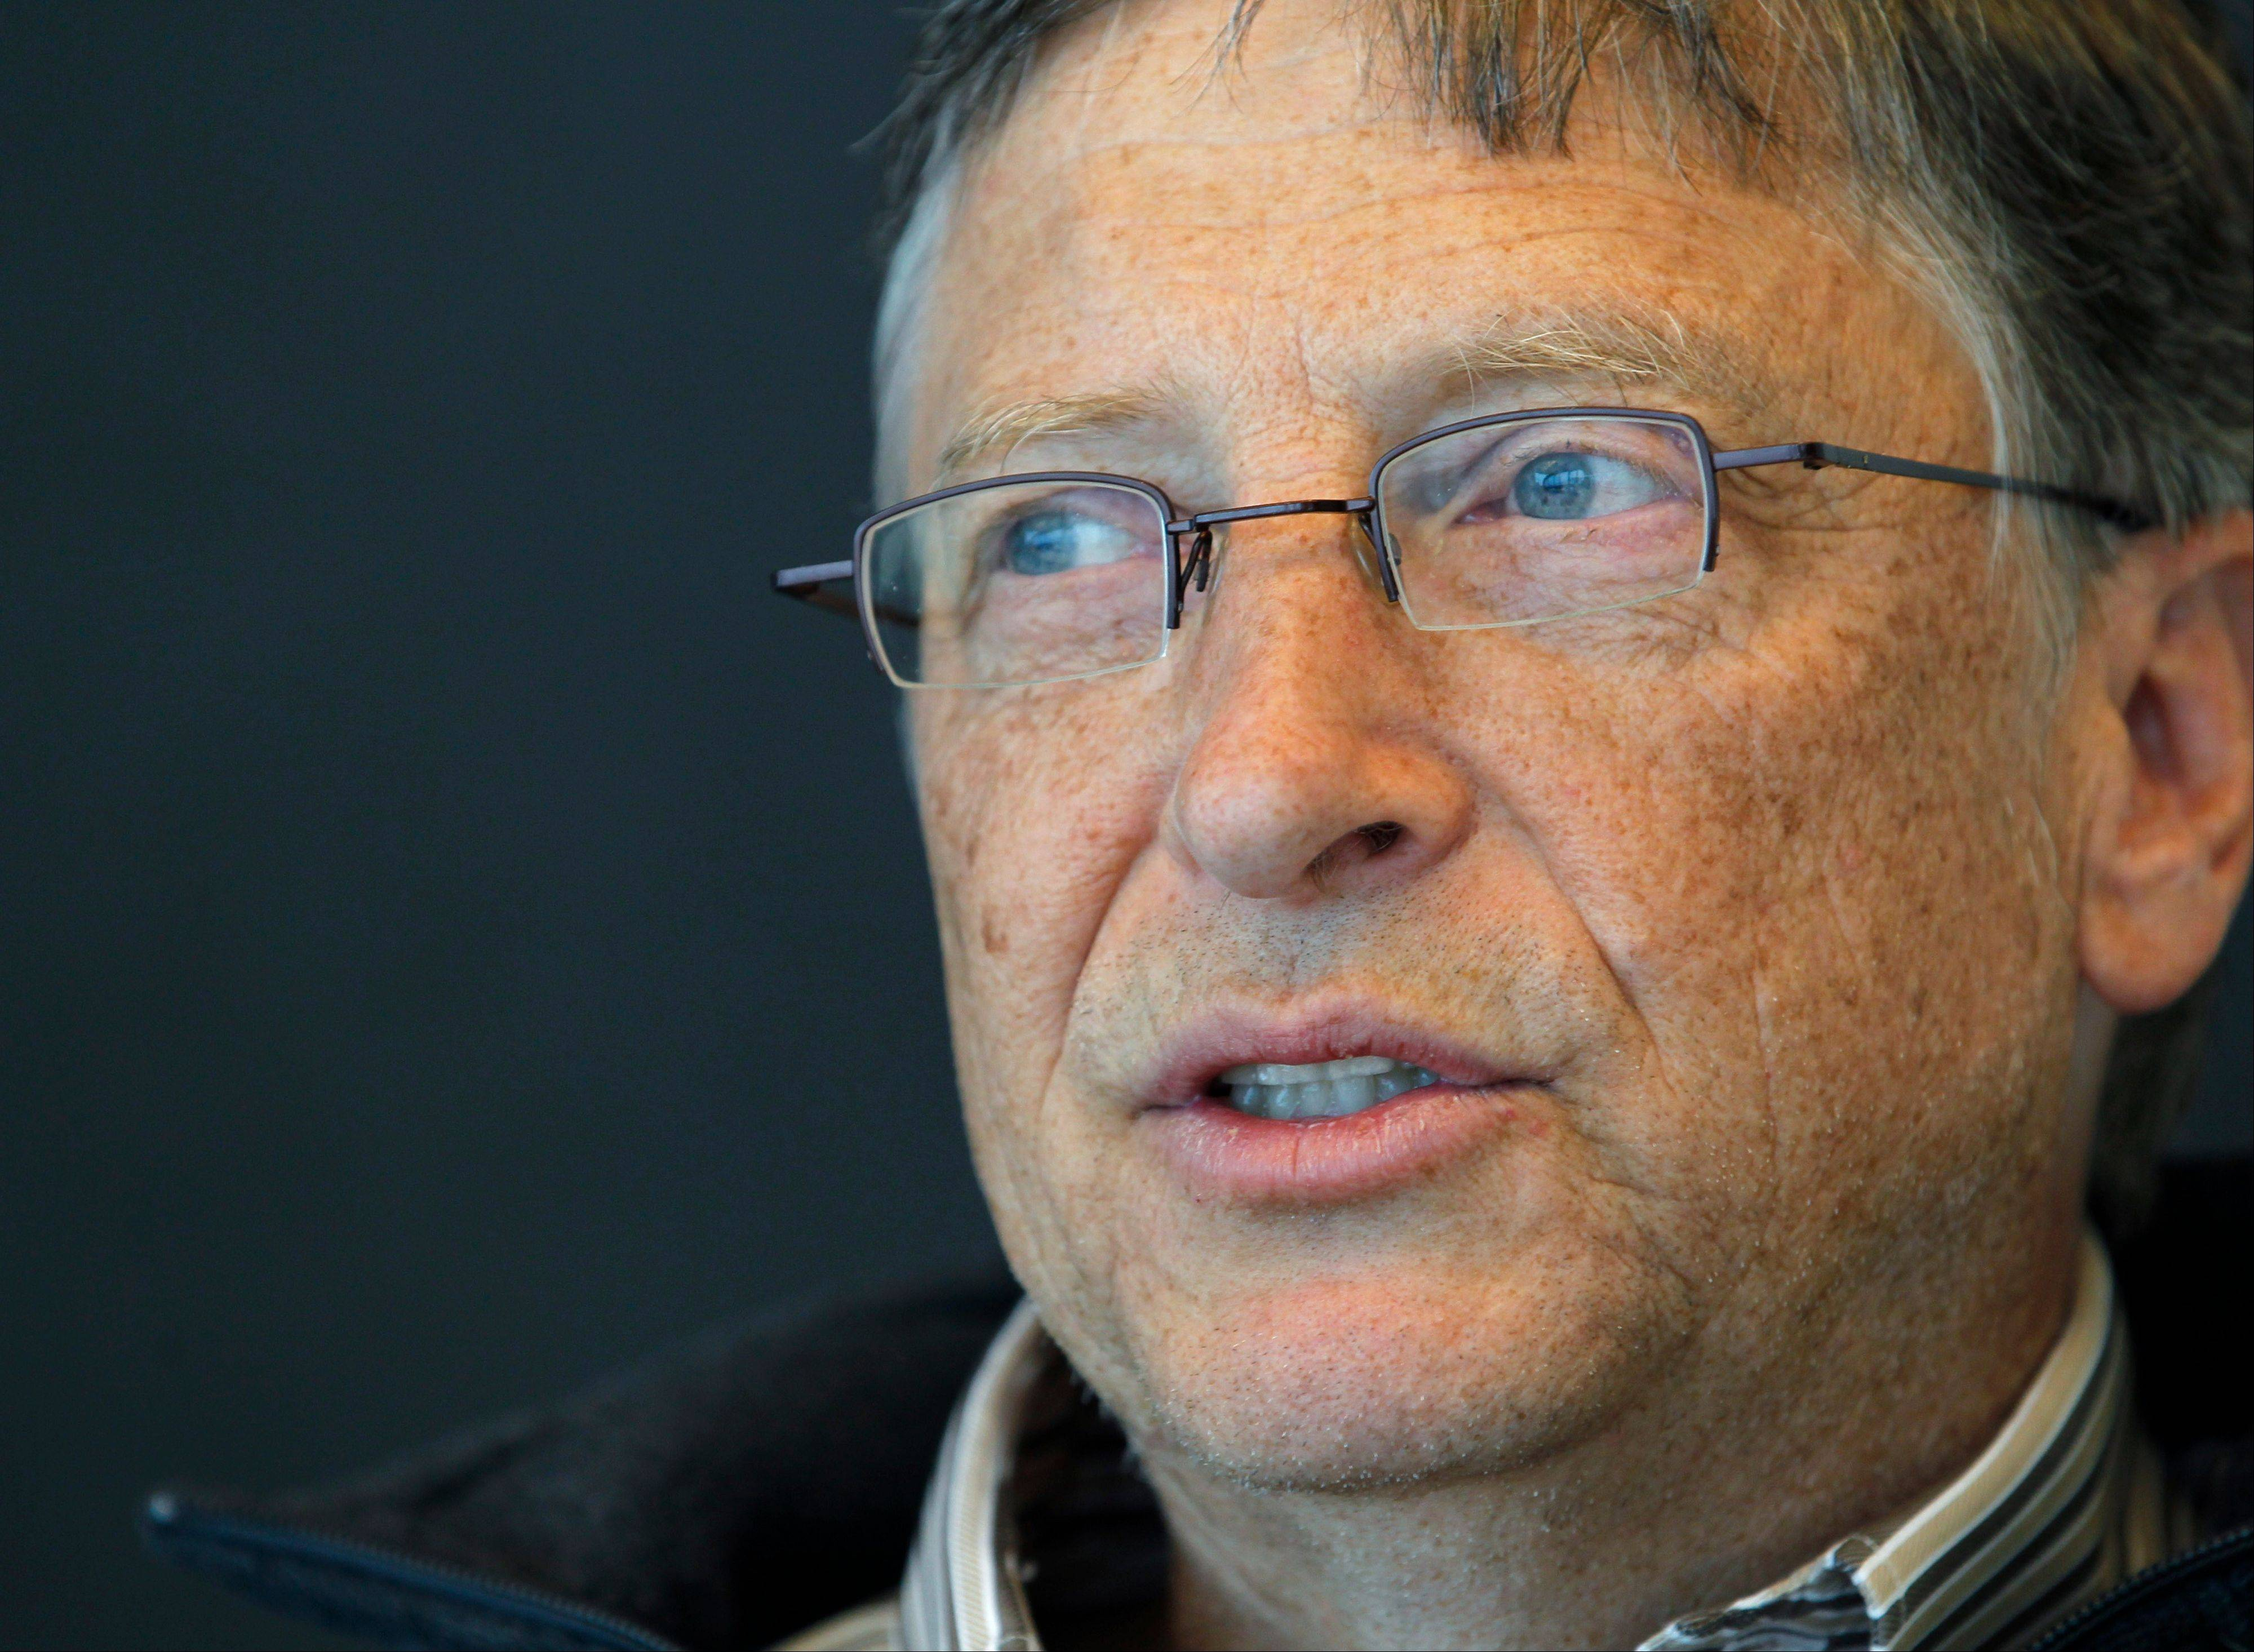 According to Farhad Manjoo, there's only guy who should be running Microsoft -- Bill Gates.